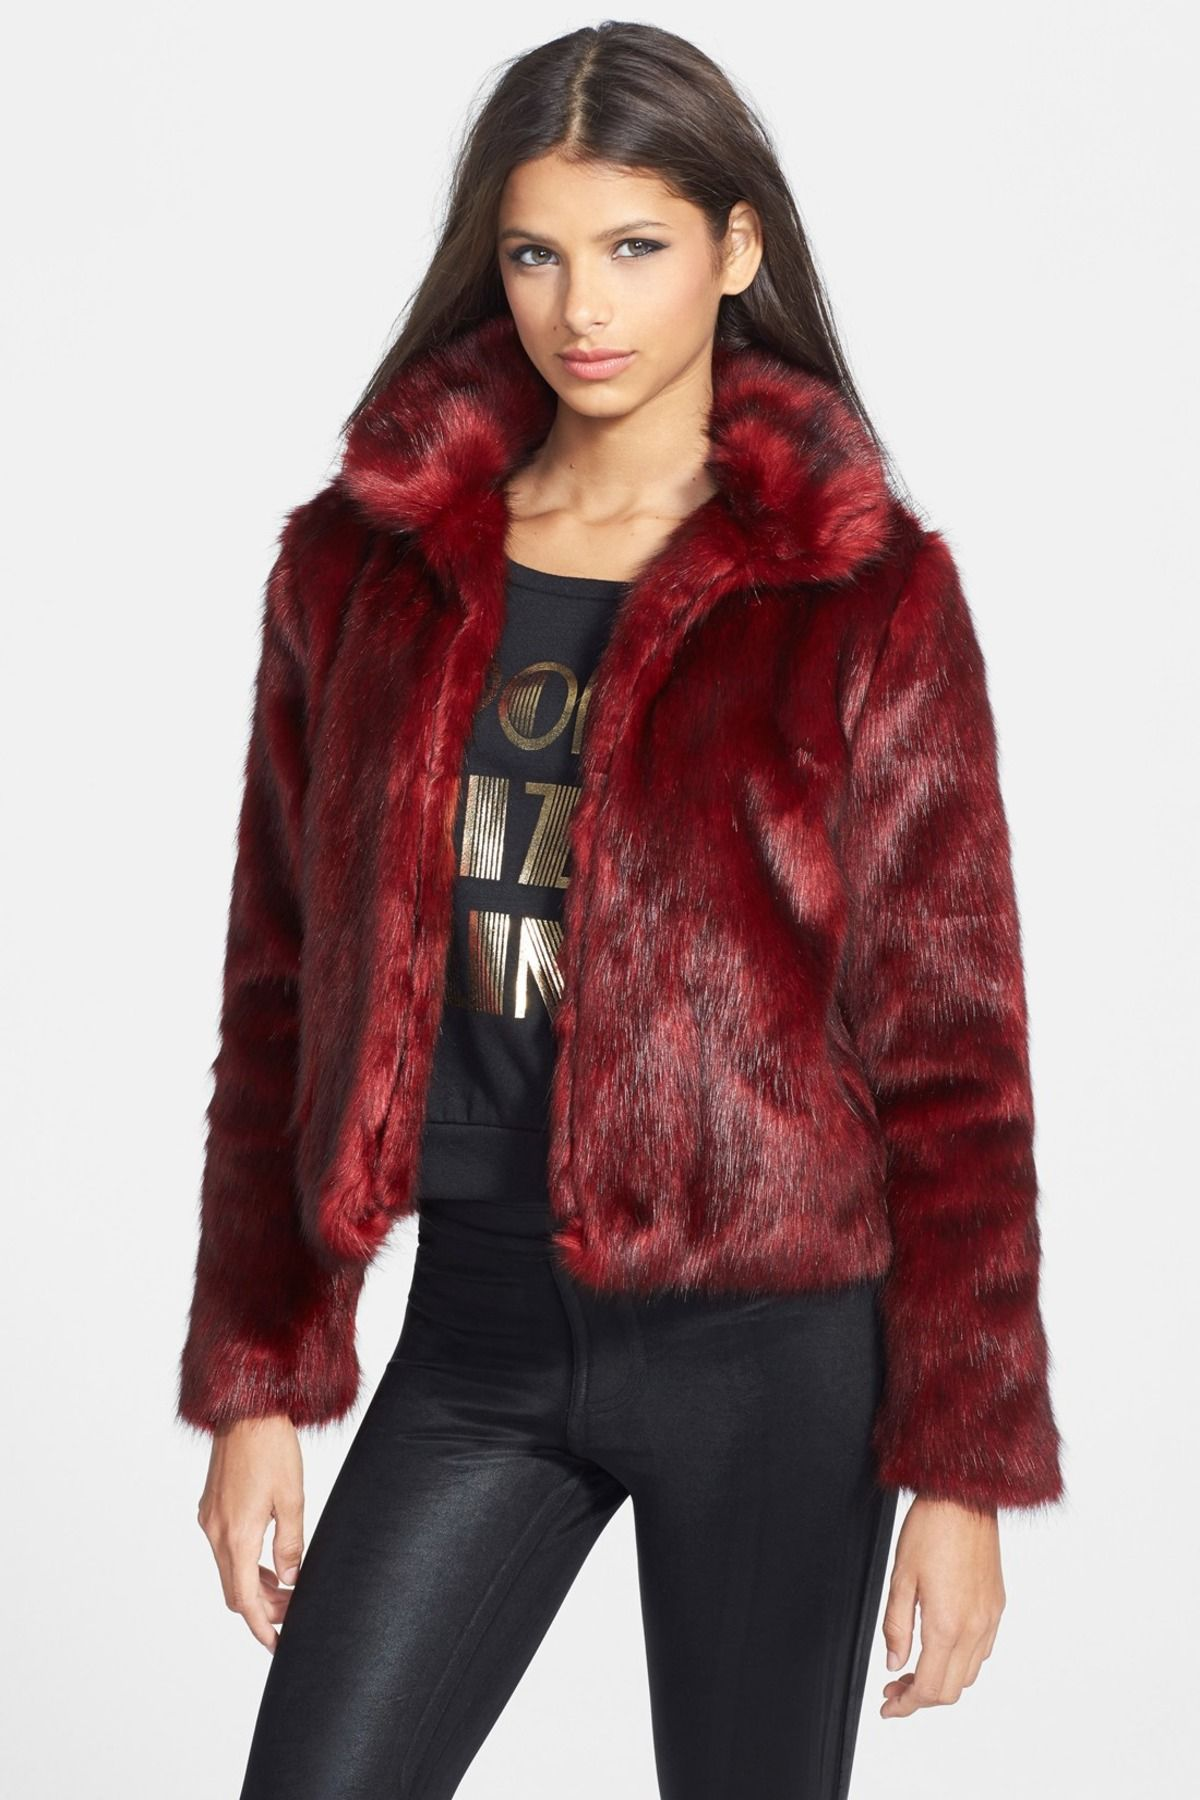 Pin by Zaz on Am I too old to wear this? Fur jacket